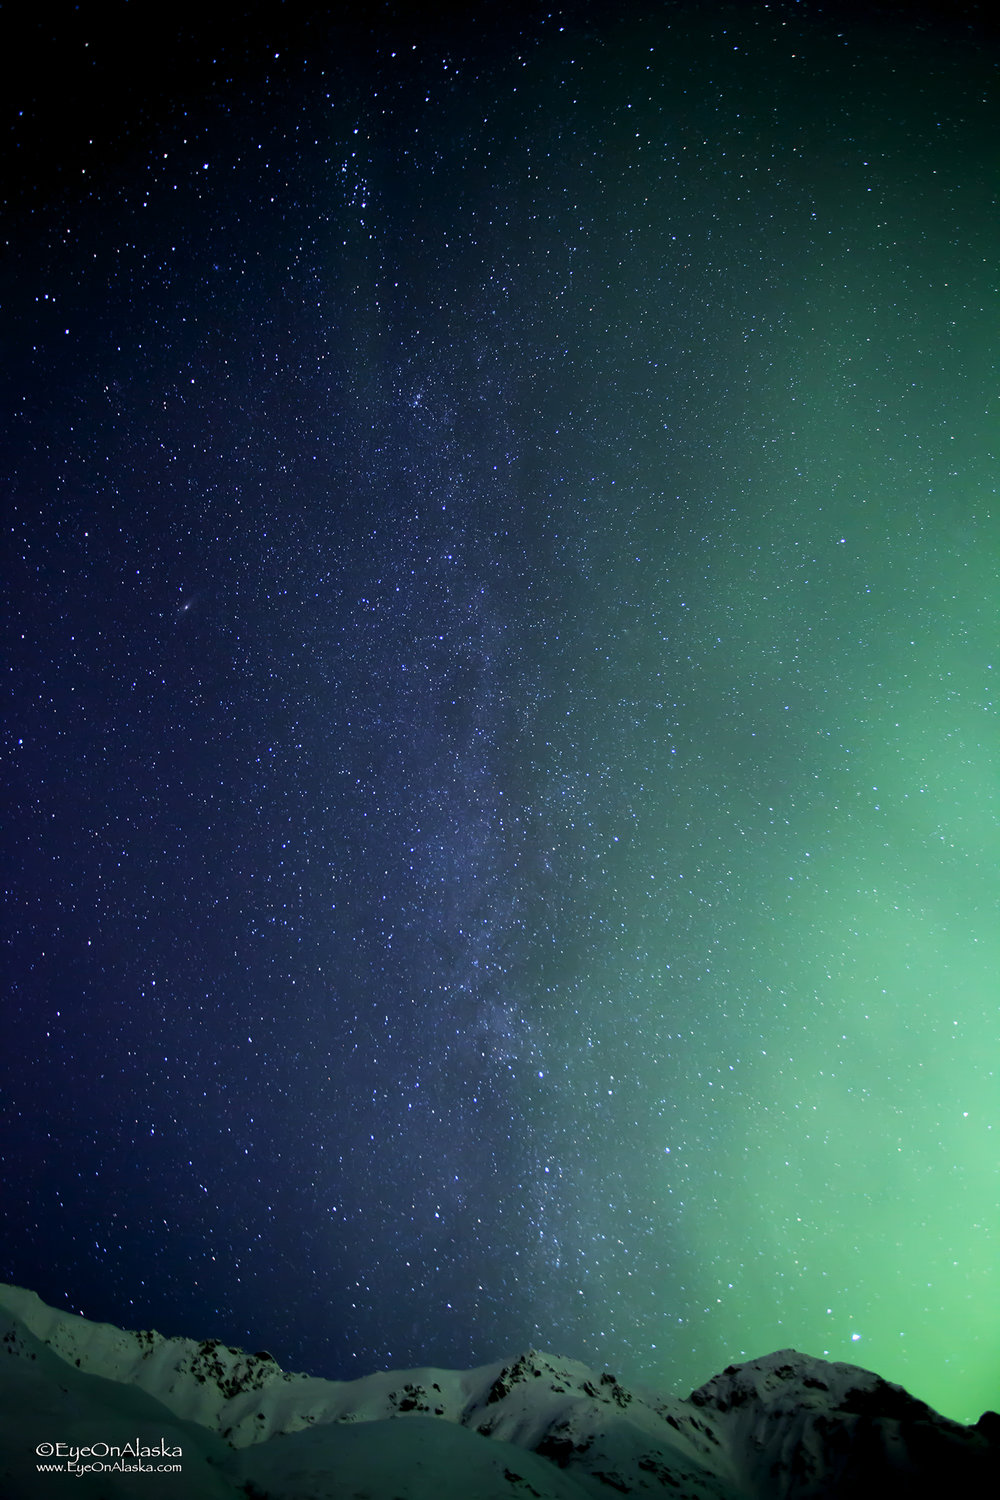 Up to the heavens.  I like vertical shots of the aurora to try and show the scale of what I'm looking at.  Still doesn't come close to actually seeing it in person.